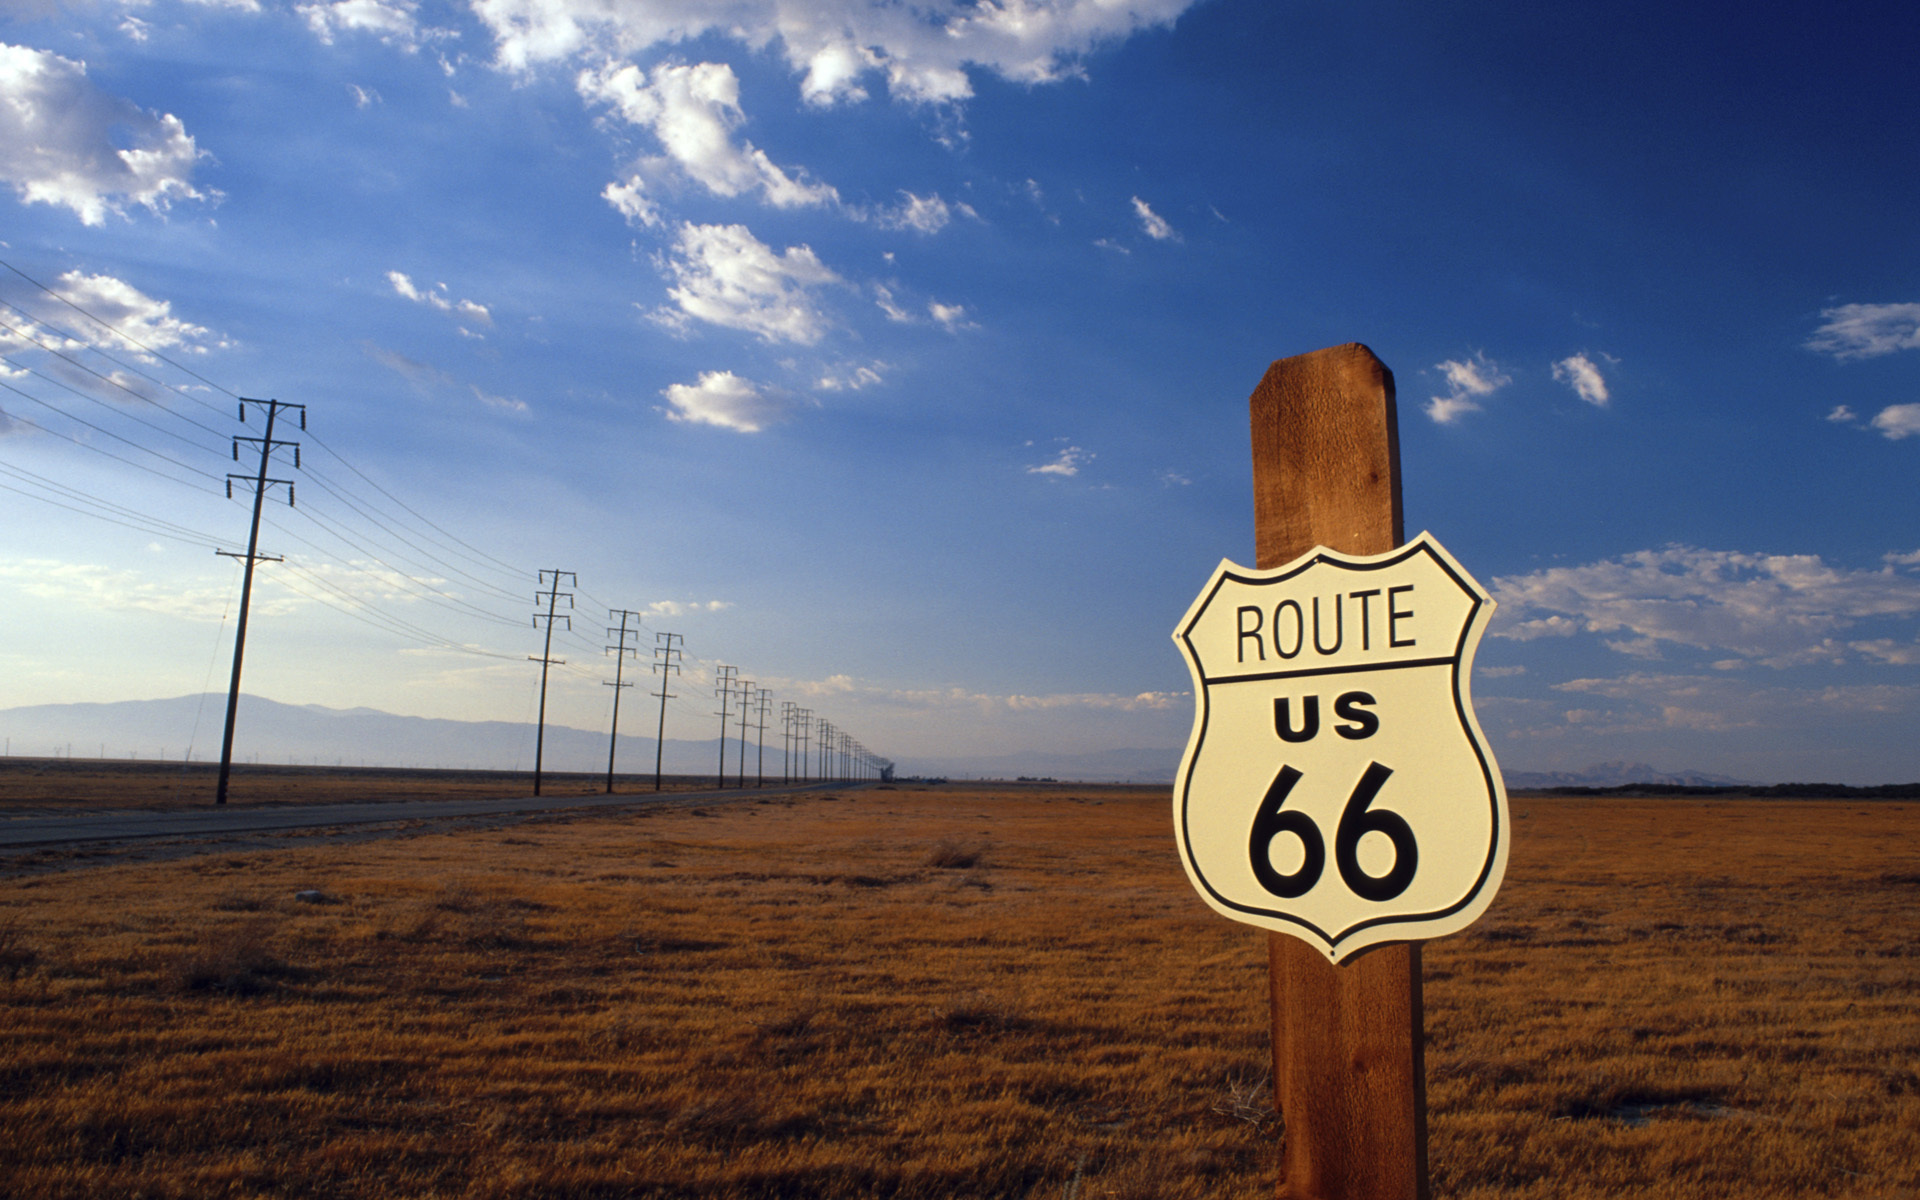 Route 66 Wallpaper